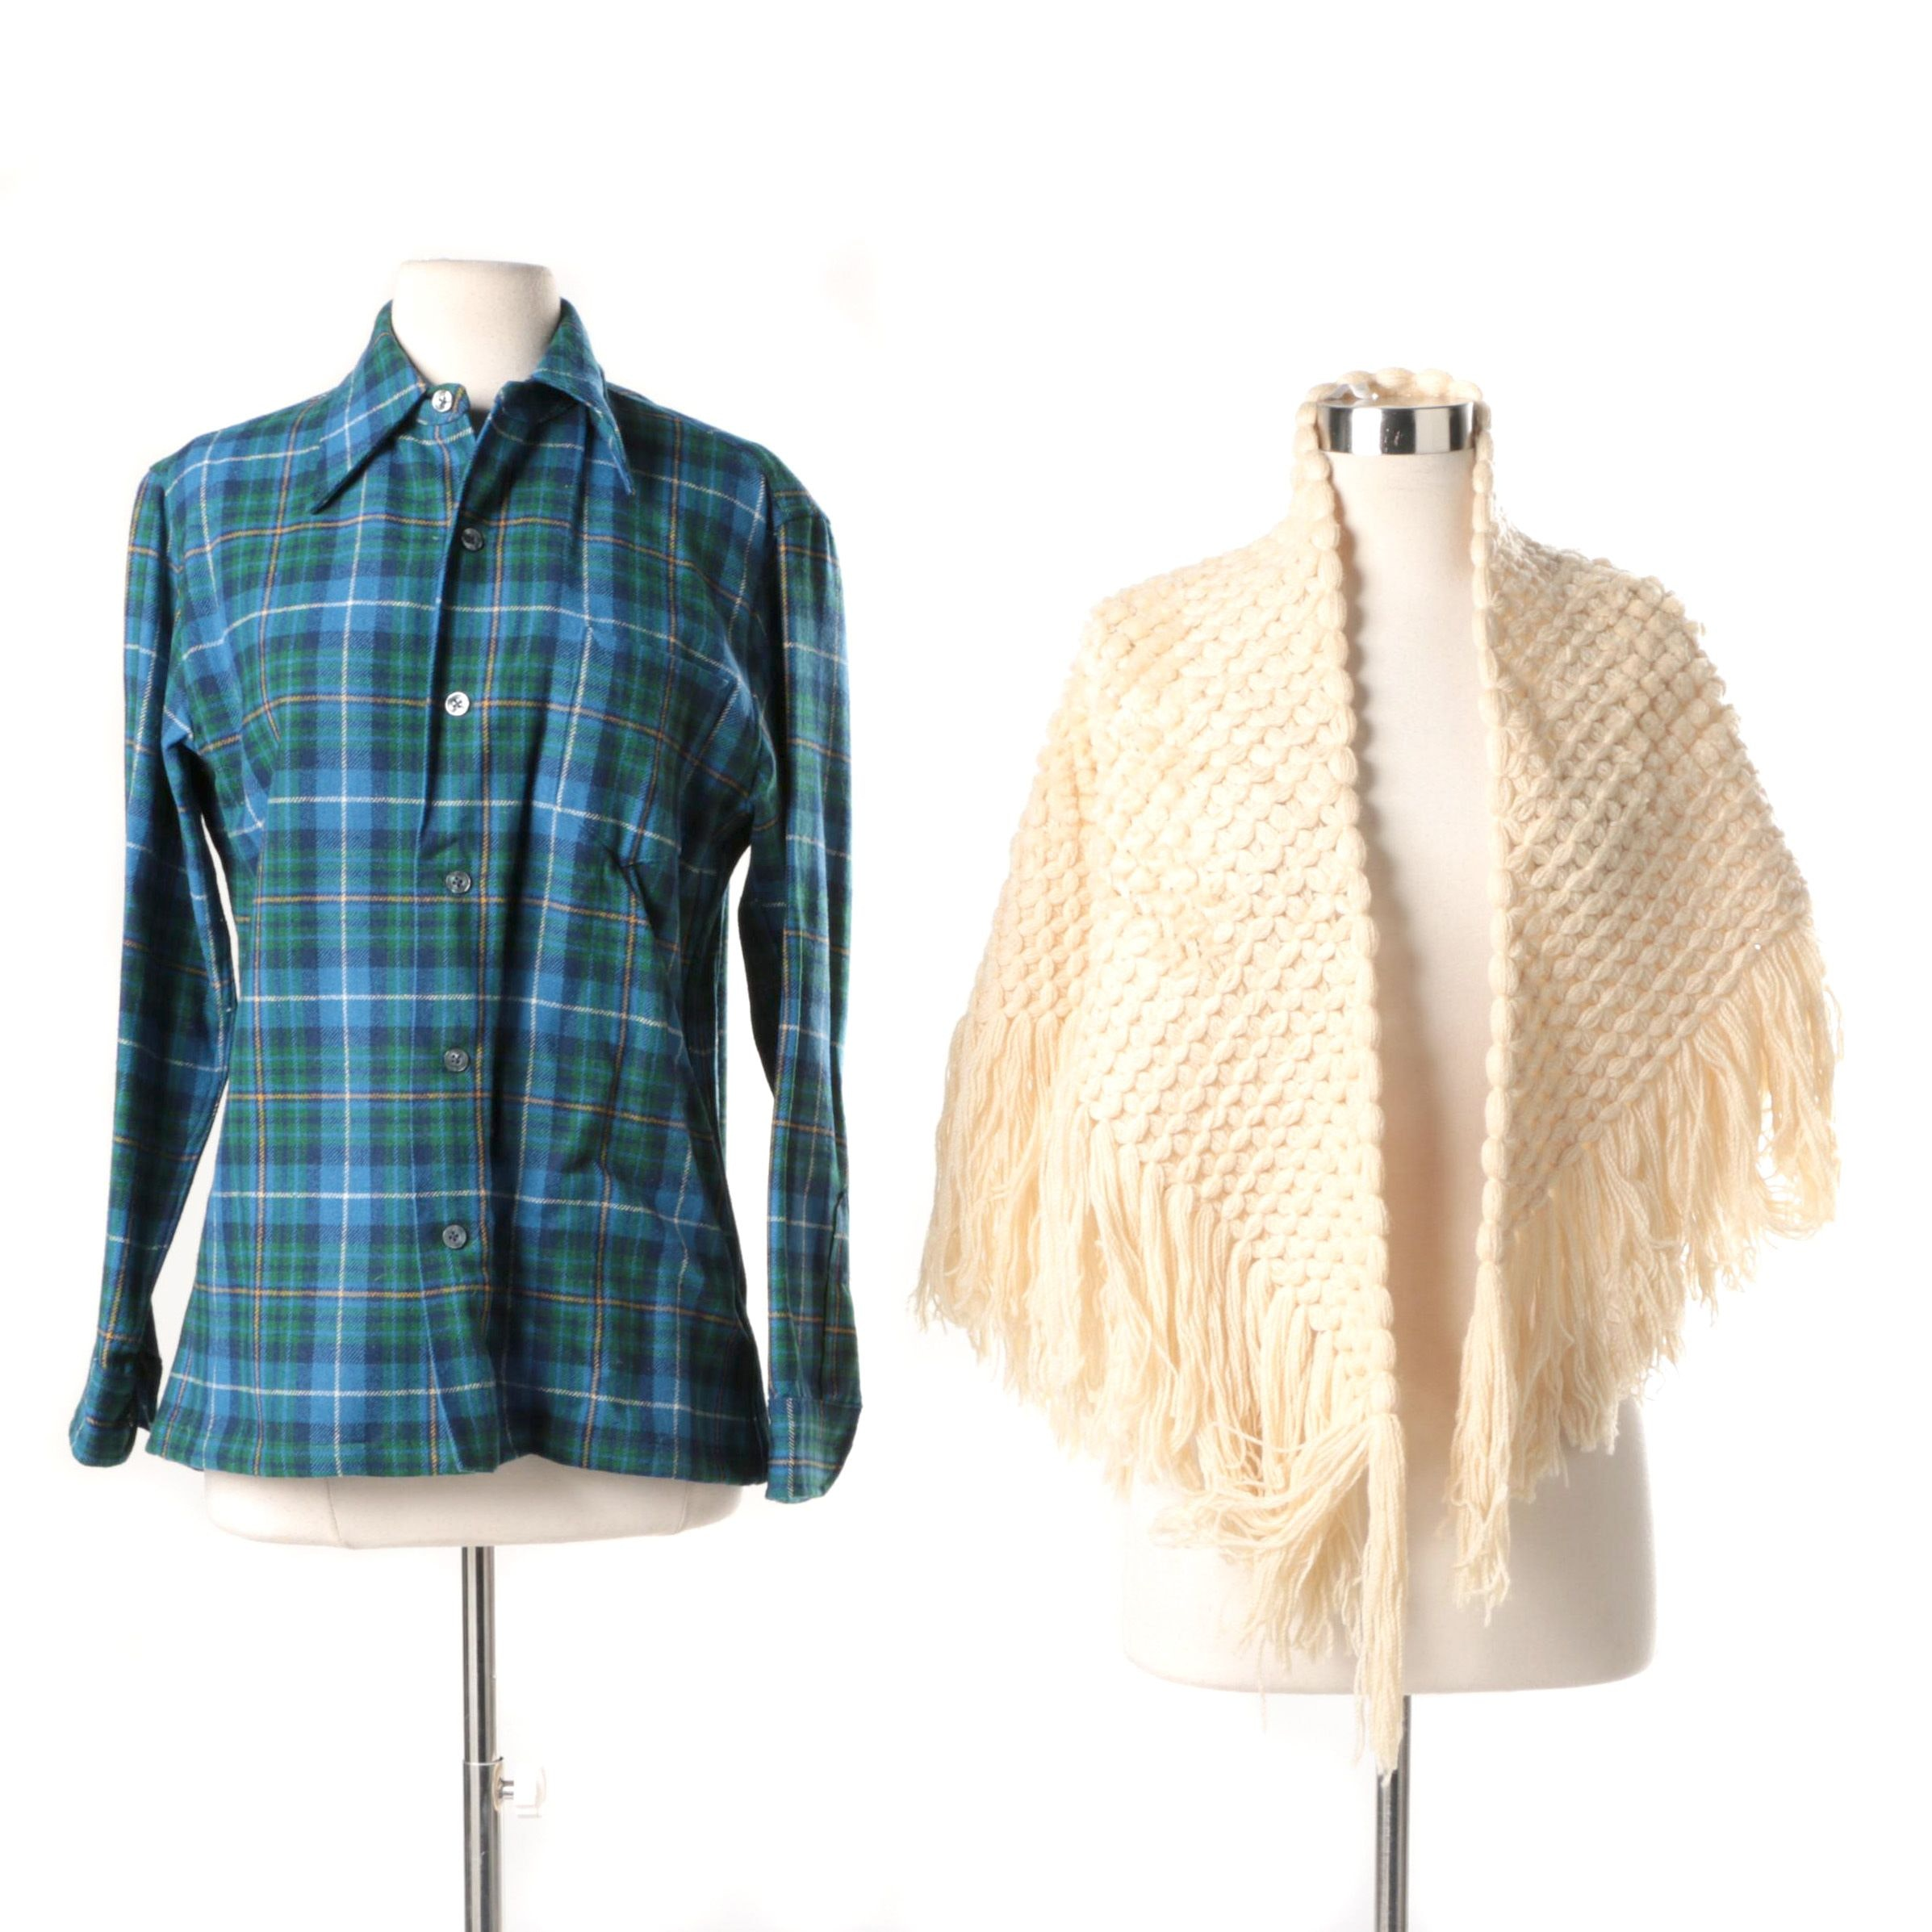 Knockabouts by Pendleton Flannel and Crocheted Shawl